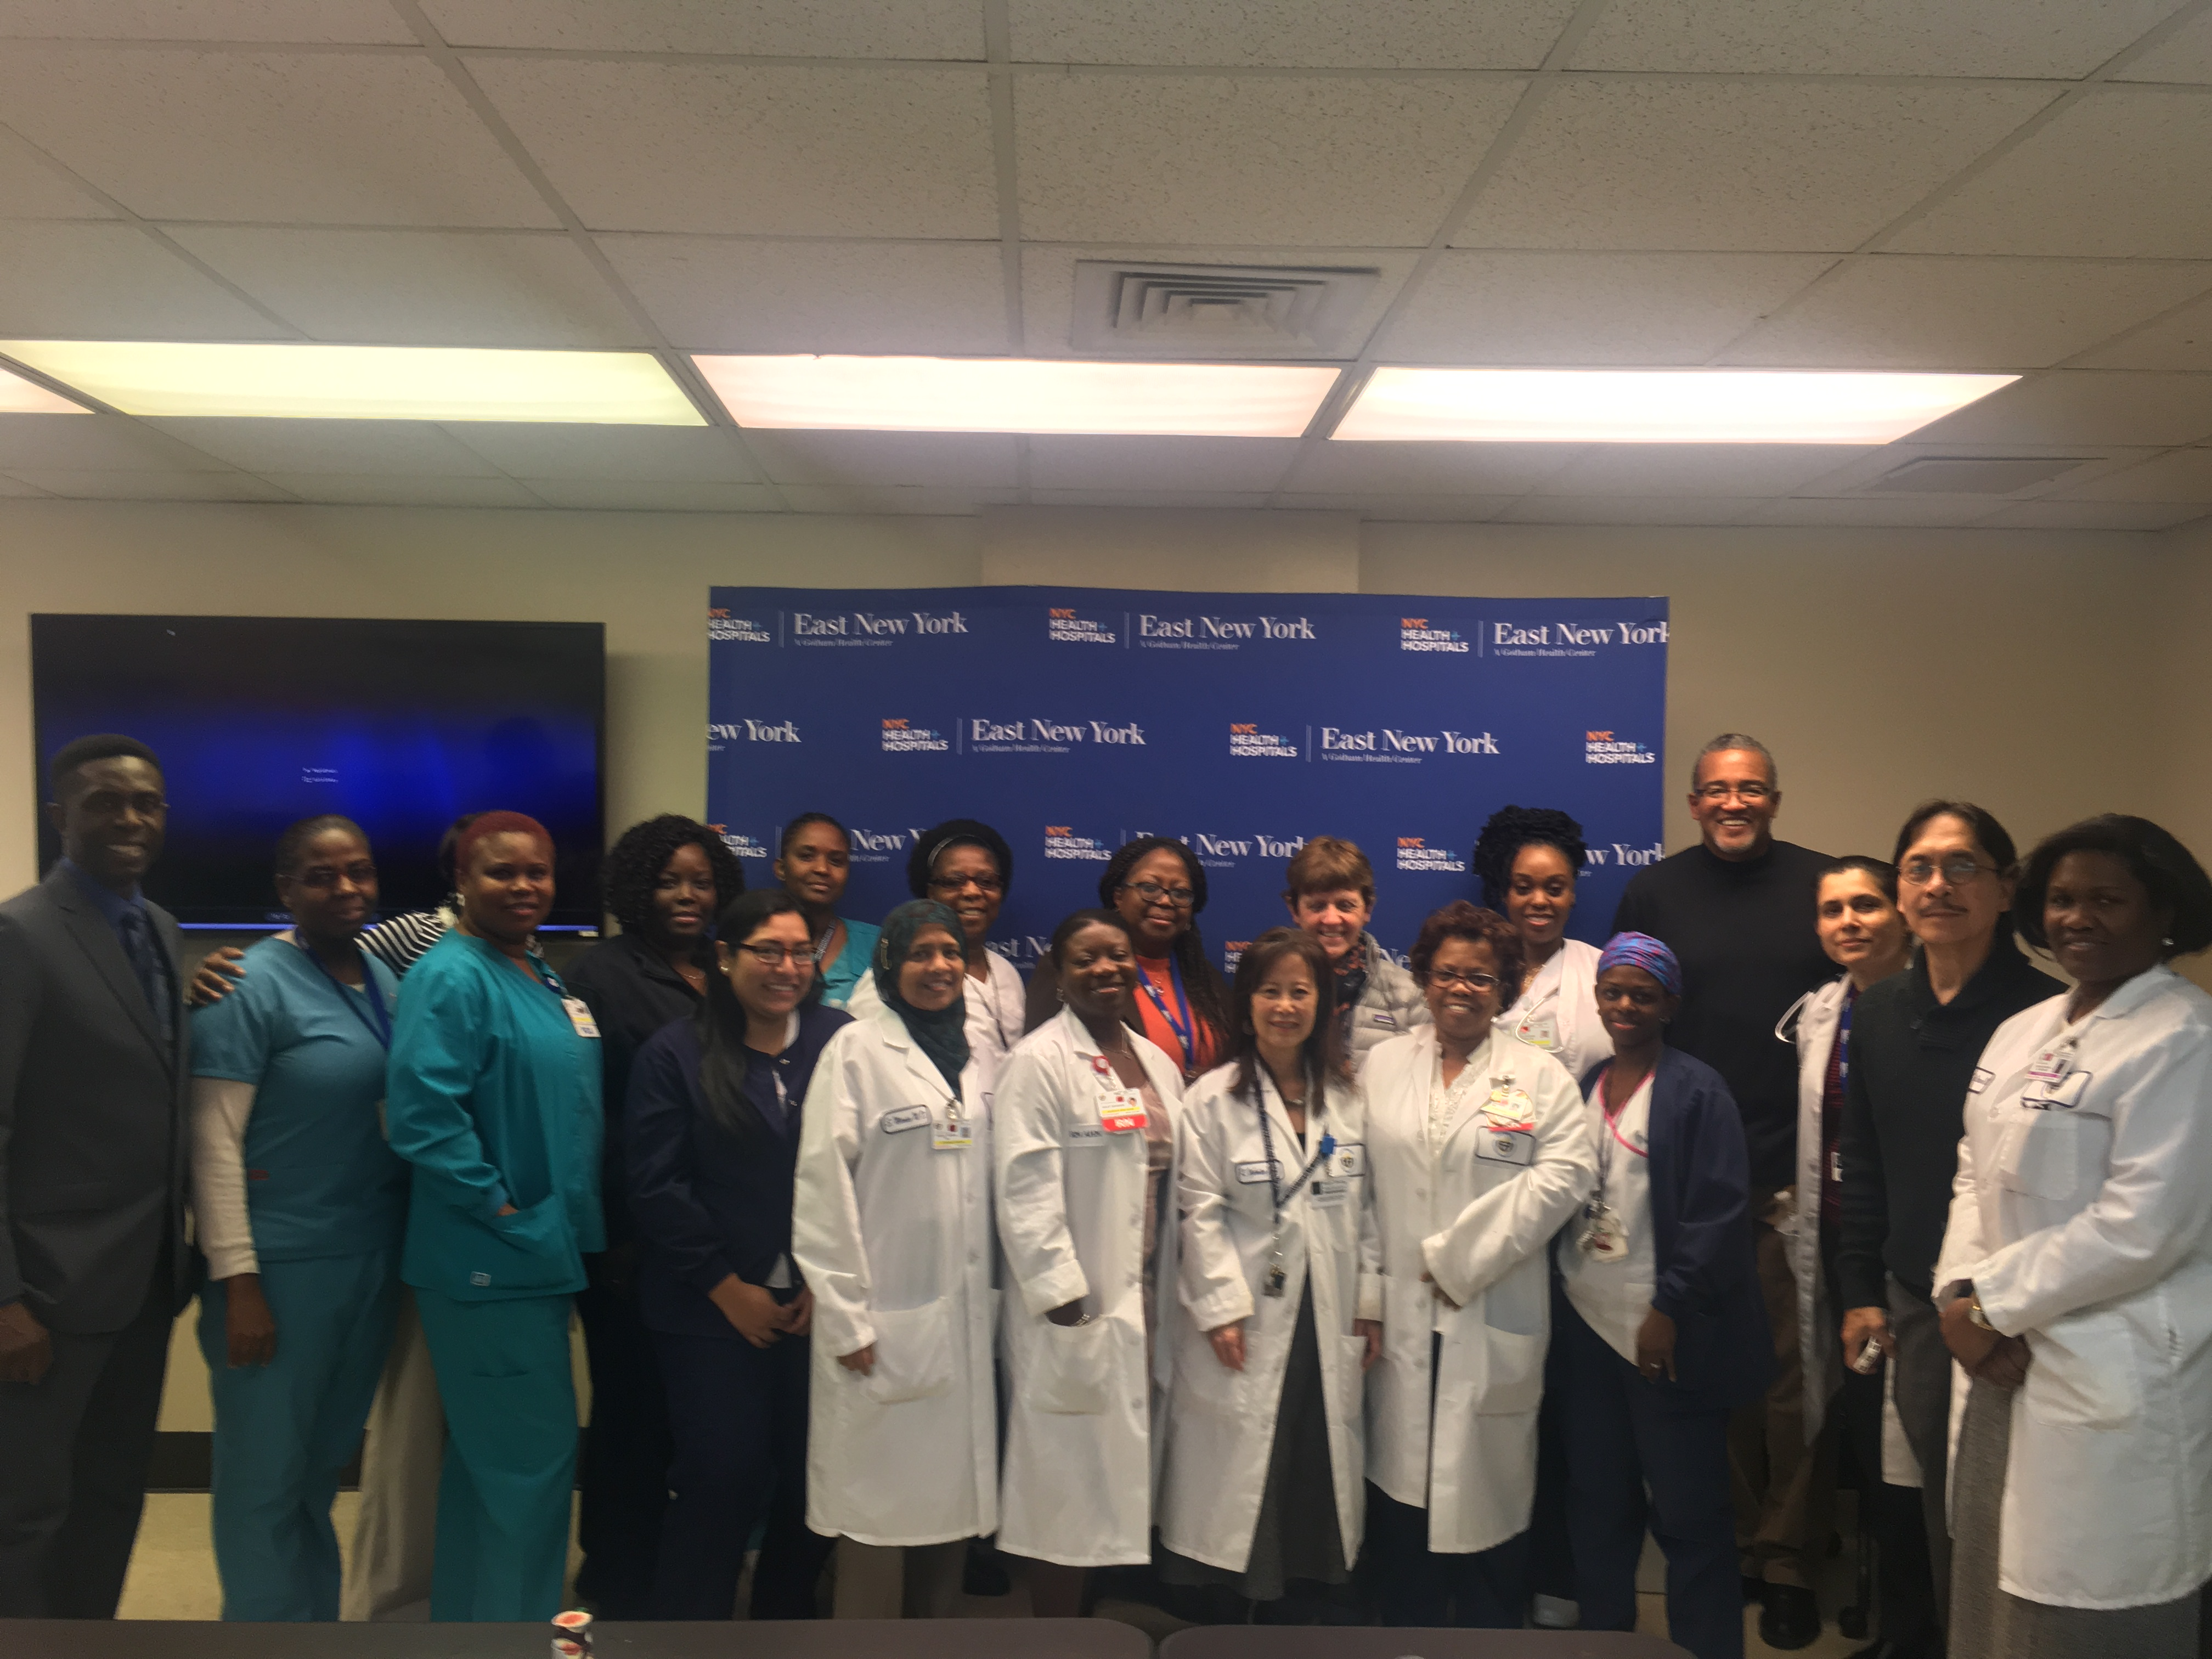 Pediatric Clinical providers at NYC Health + Hospitals/East New York complete PACE training. OneCity Health PPS Partner, 1199SEIU Training and Employment Funds, helped to facilitate the training